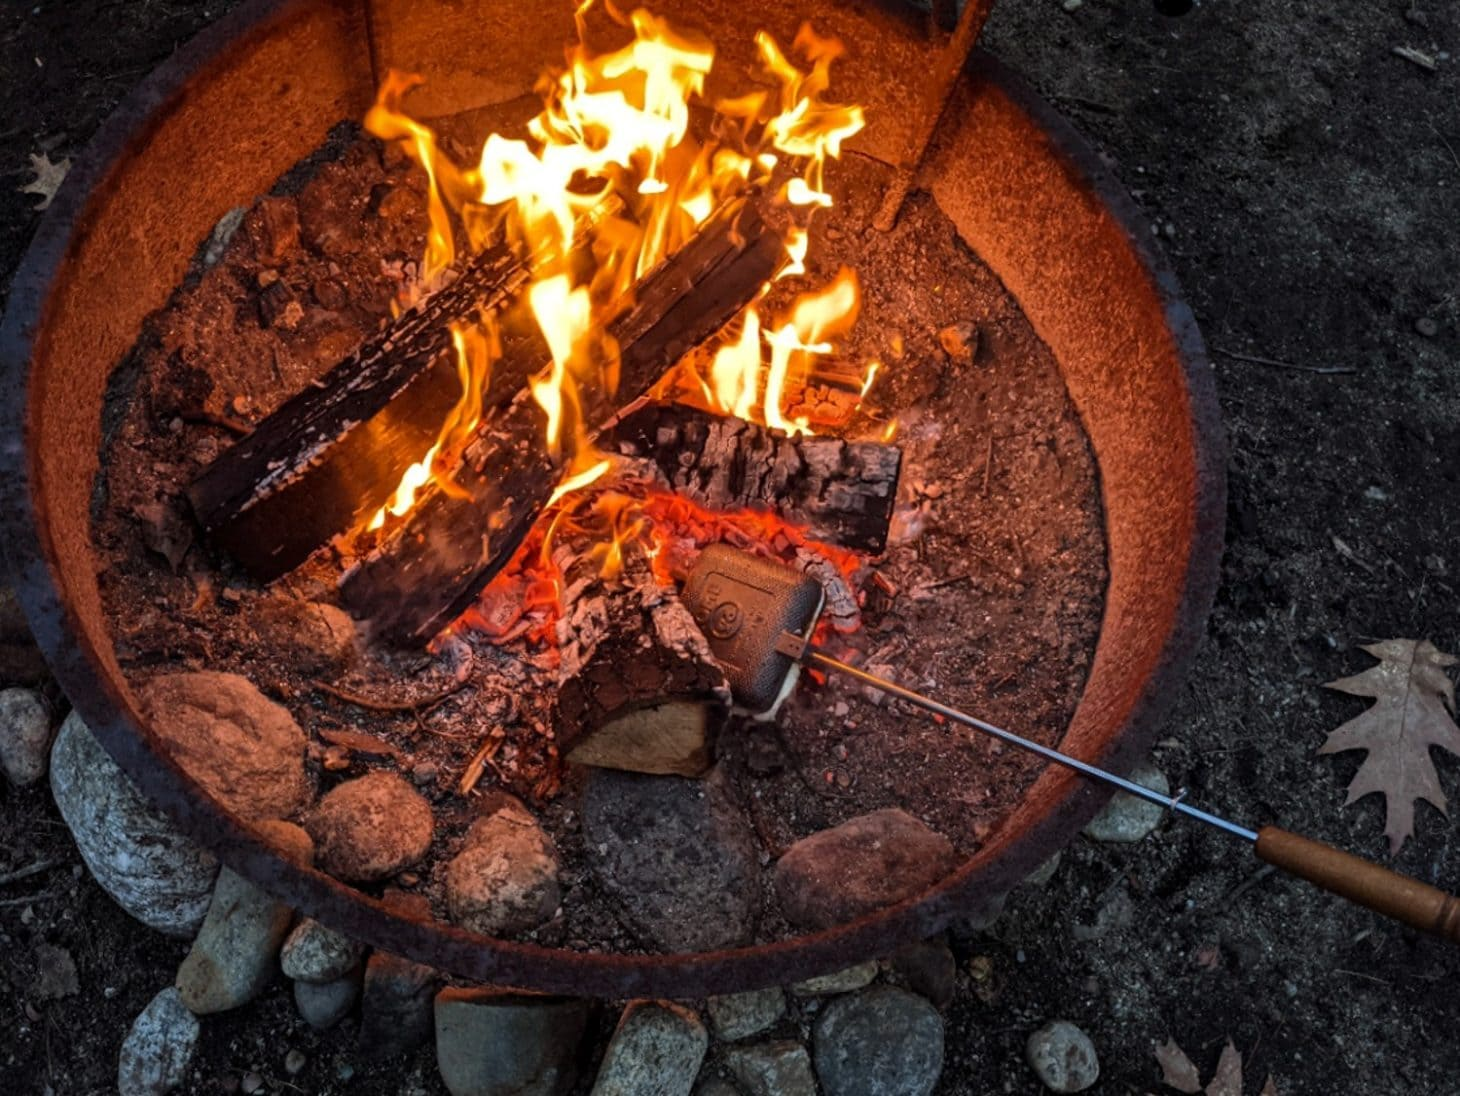 Pie iron cooking directly in campfire